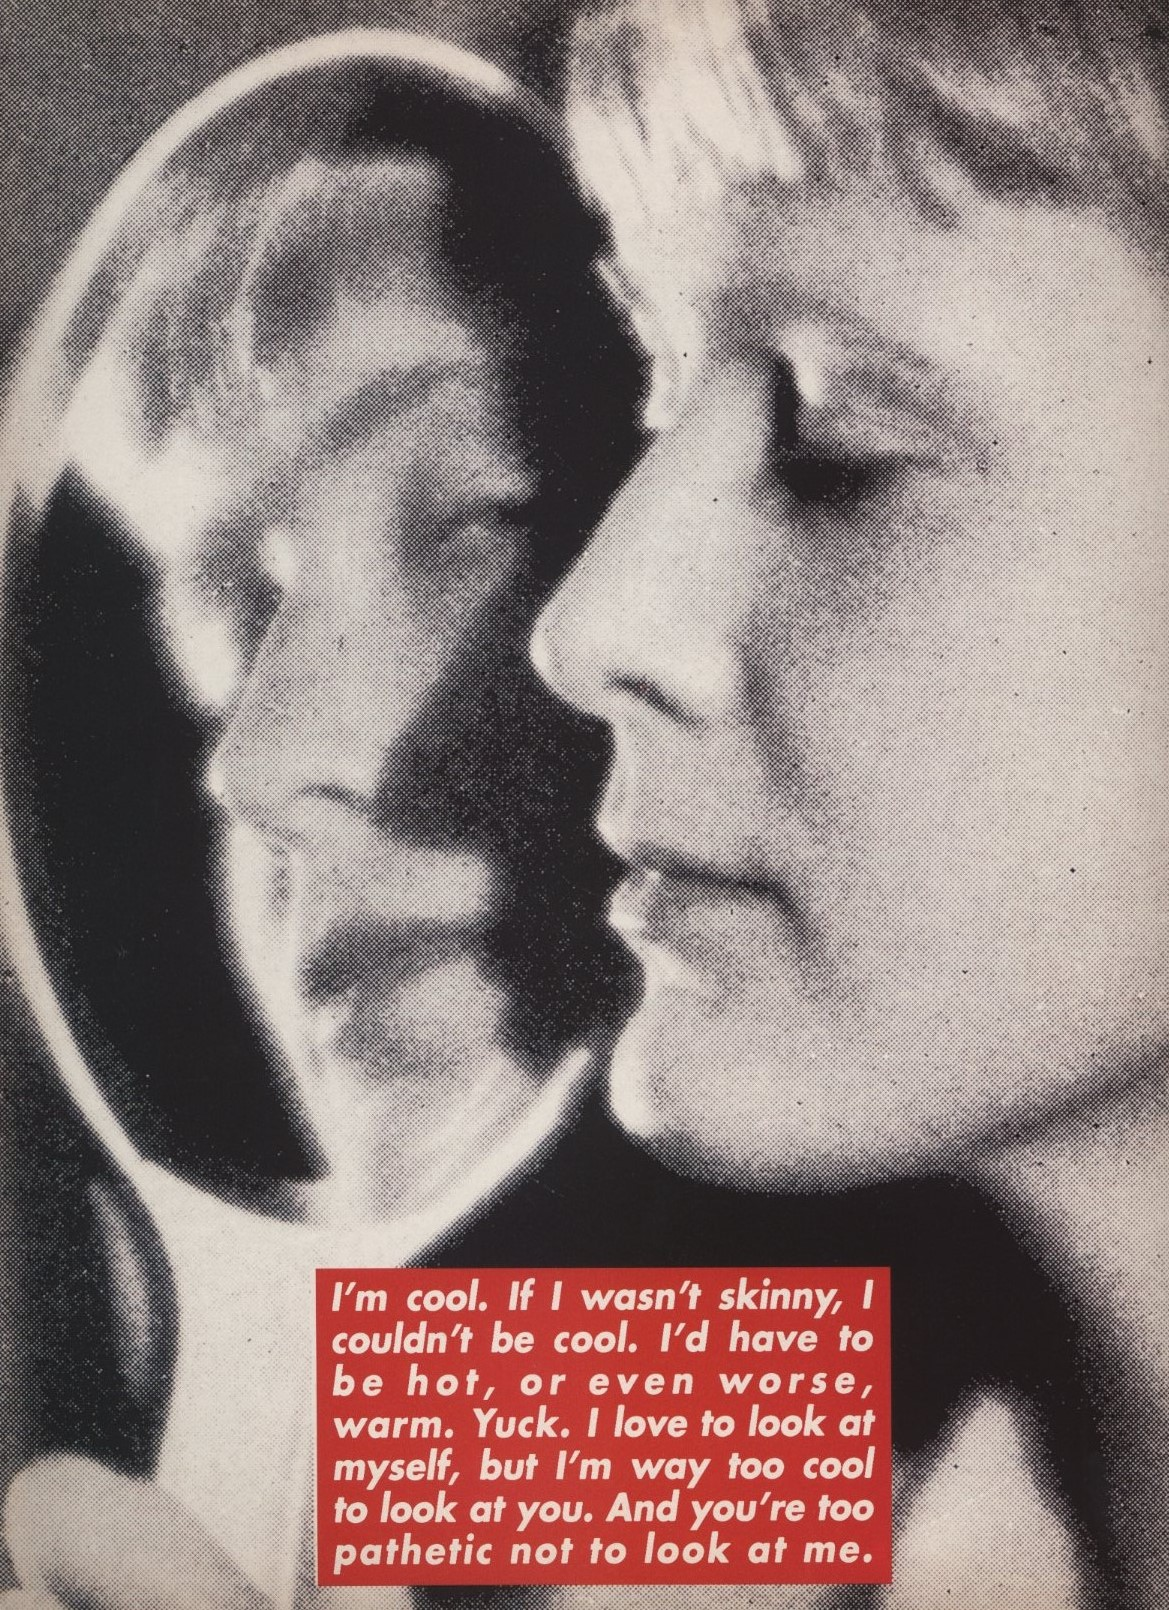 DAZED & CONFUSED | ISSUE 21 | JUNE 1996 | SPECIAL ARTIST'S PROJECT | BARBARA KRUGER